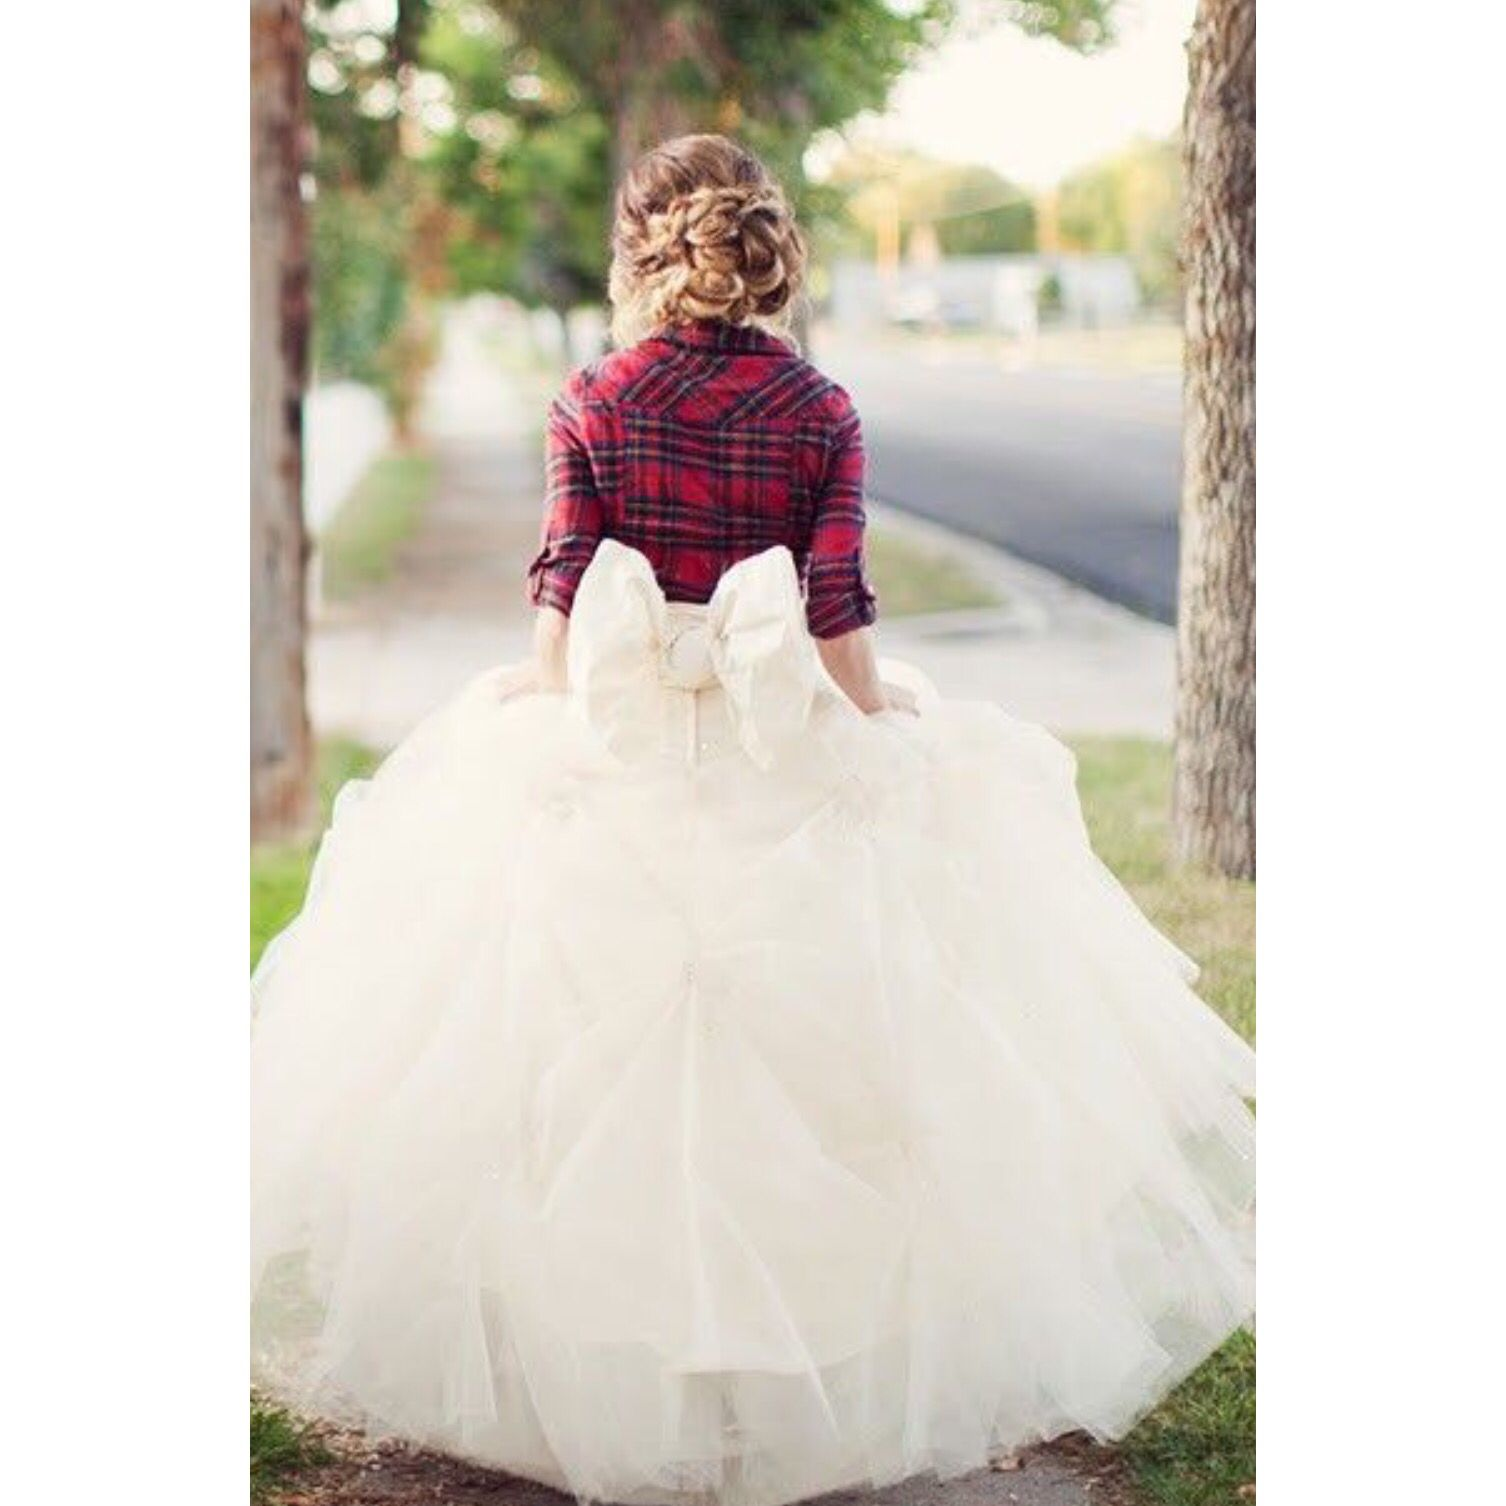 Wedding dresses with cowgirl boots  Pin by Cristina on Engagement Photo Ideas  Pinterest  Wedding